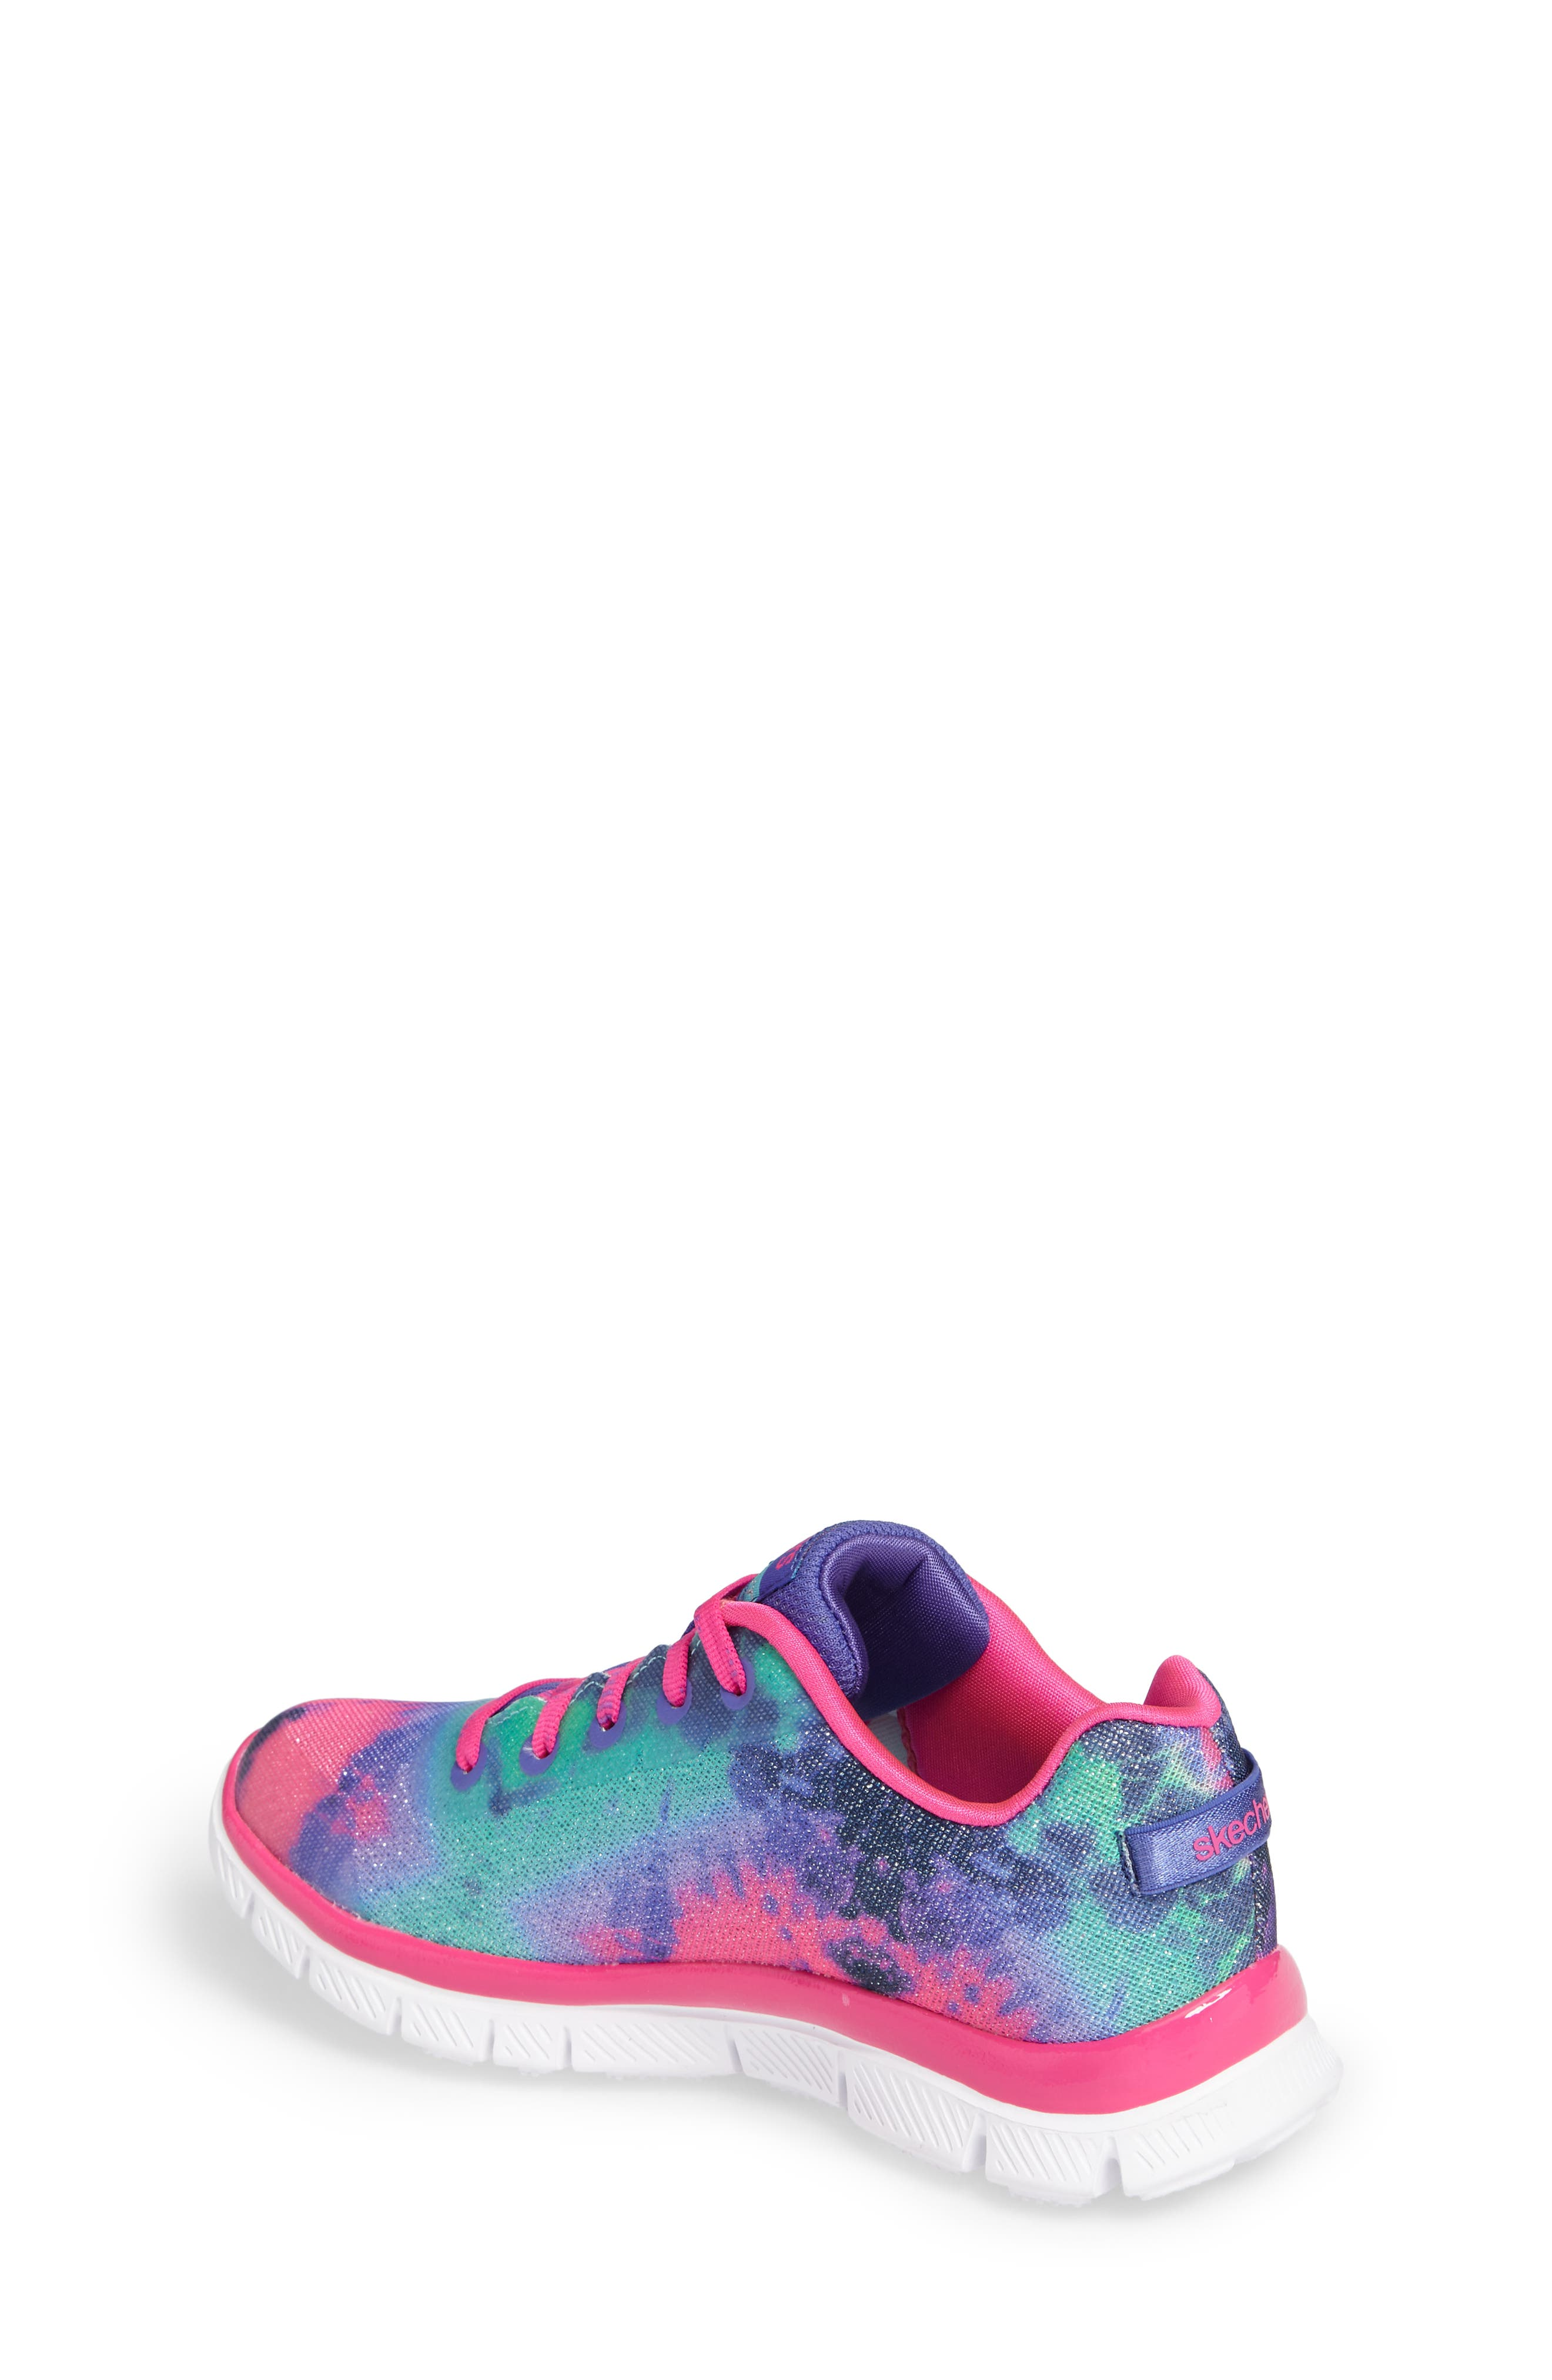 Skech Appeal Groove Thang Sneaker,                             Alternate thumbnail 2, color,                             Neon Pink/ Multi